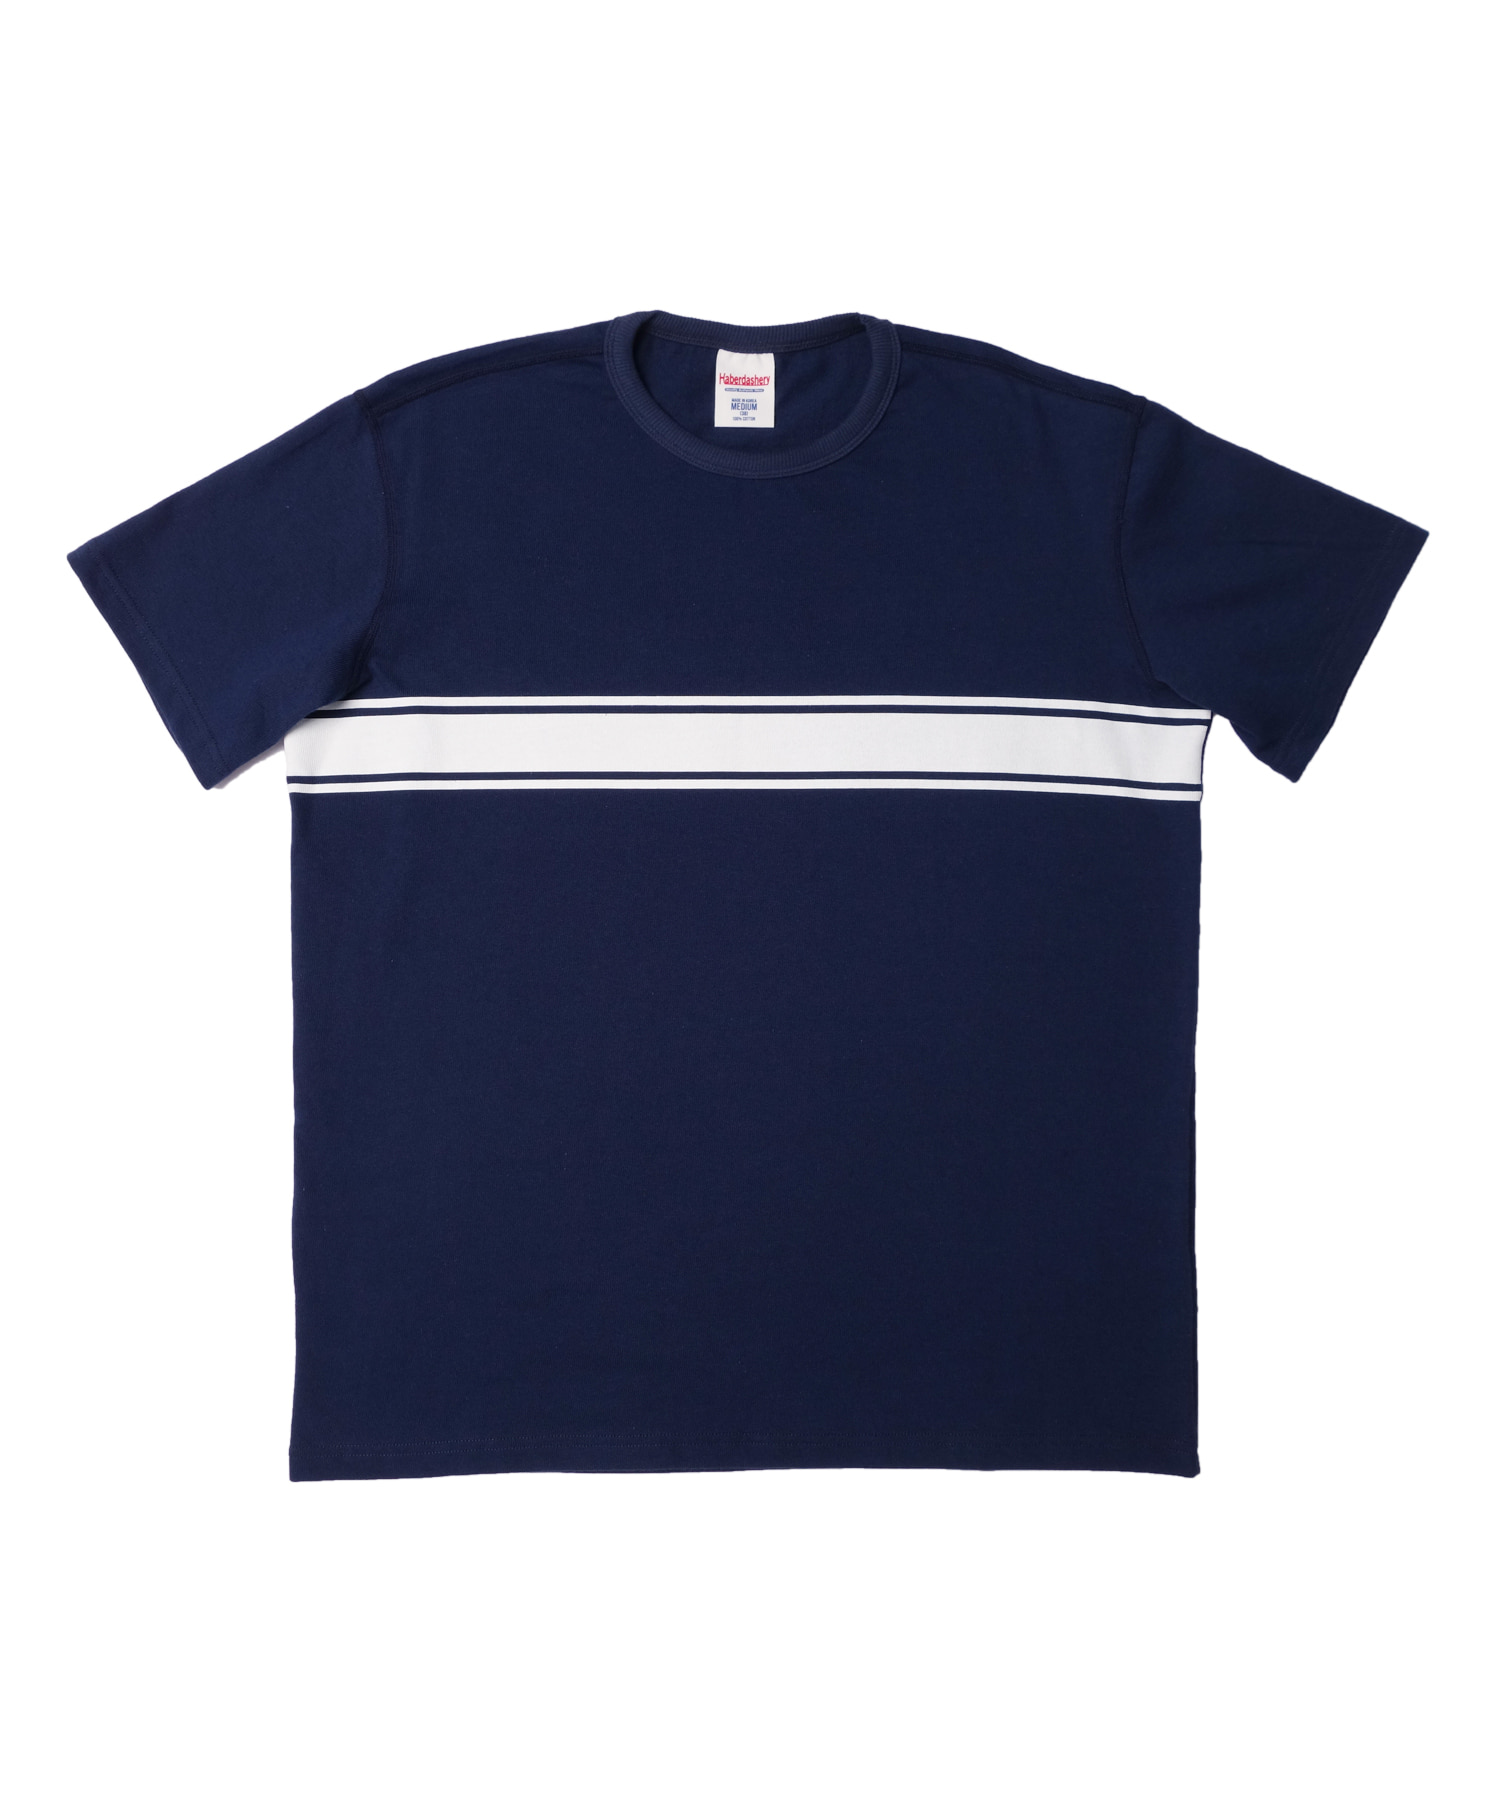 해버대셔리 STRIPE BORDER SHORT SLEEVE_NAVY